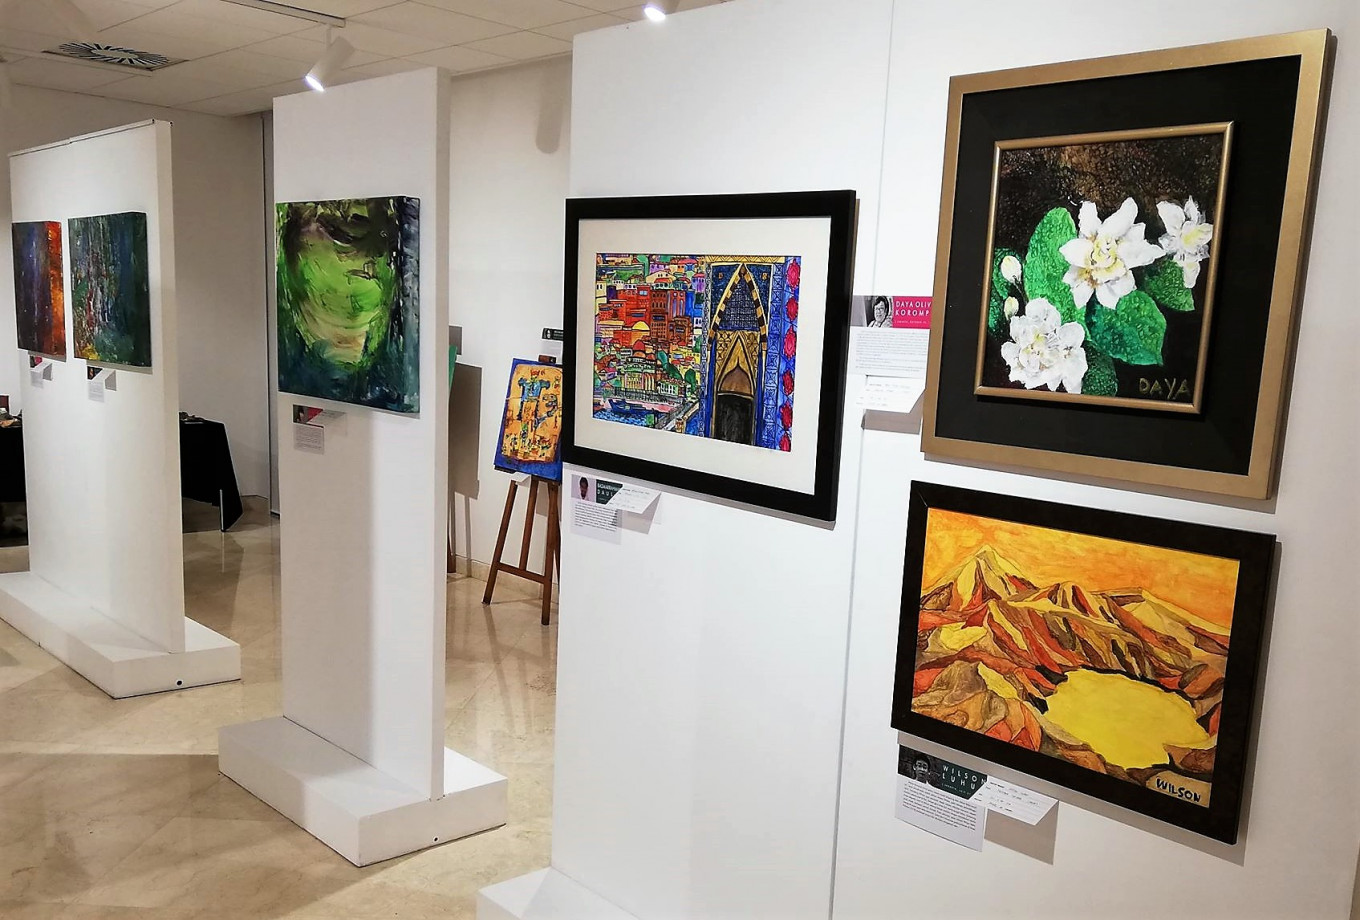 Speaking through Color: Exhibition showcases paintings by artists with special needs